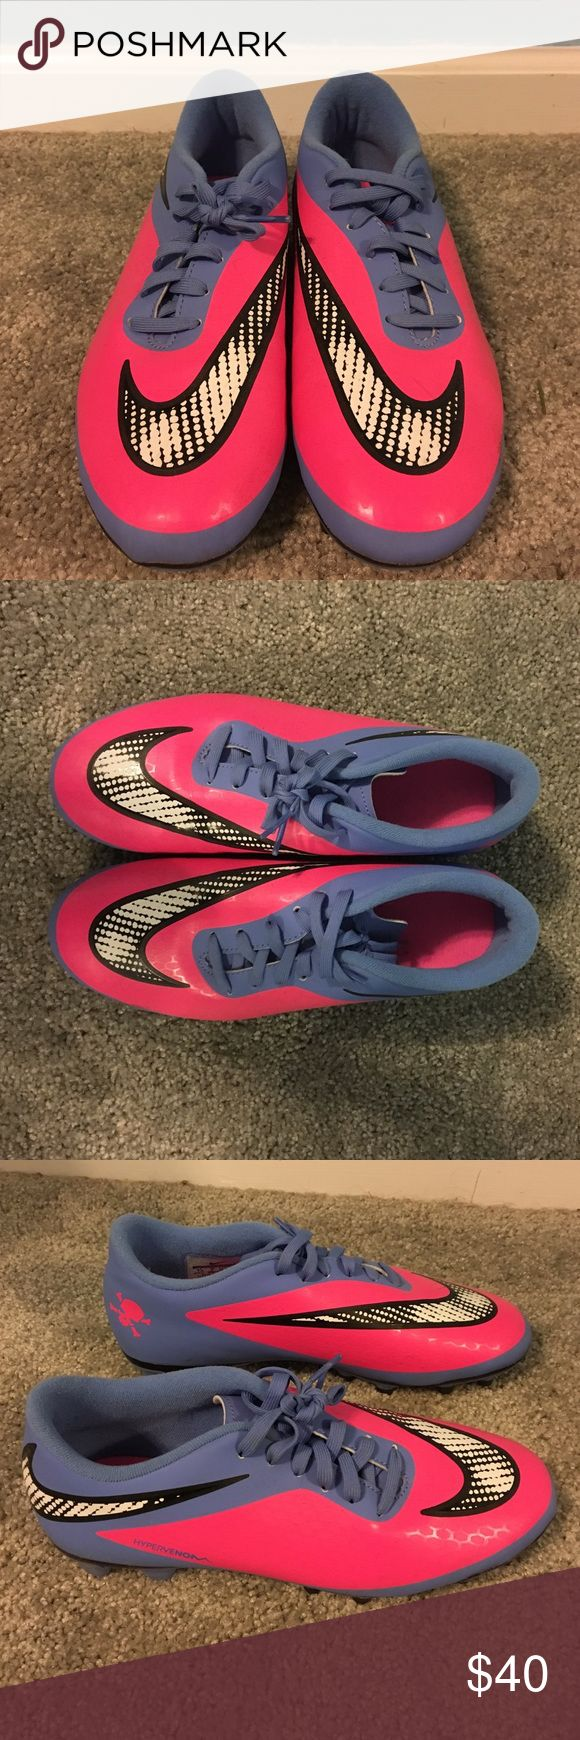 Women's size 7.5 Nike cleats Purple and pink Nike cleats. Only wore once in brand new condition. Nike Shoes Athletic Shoes